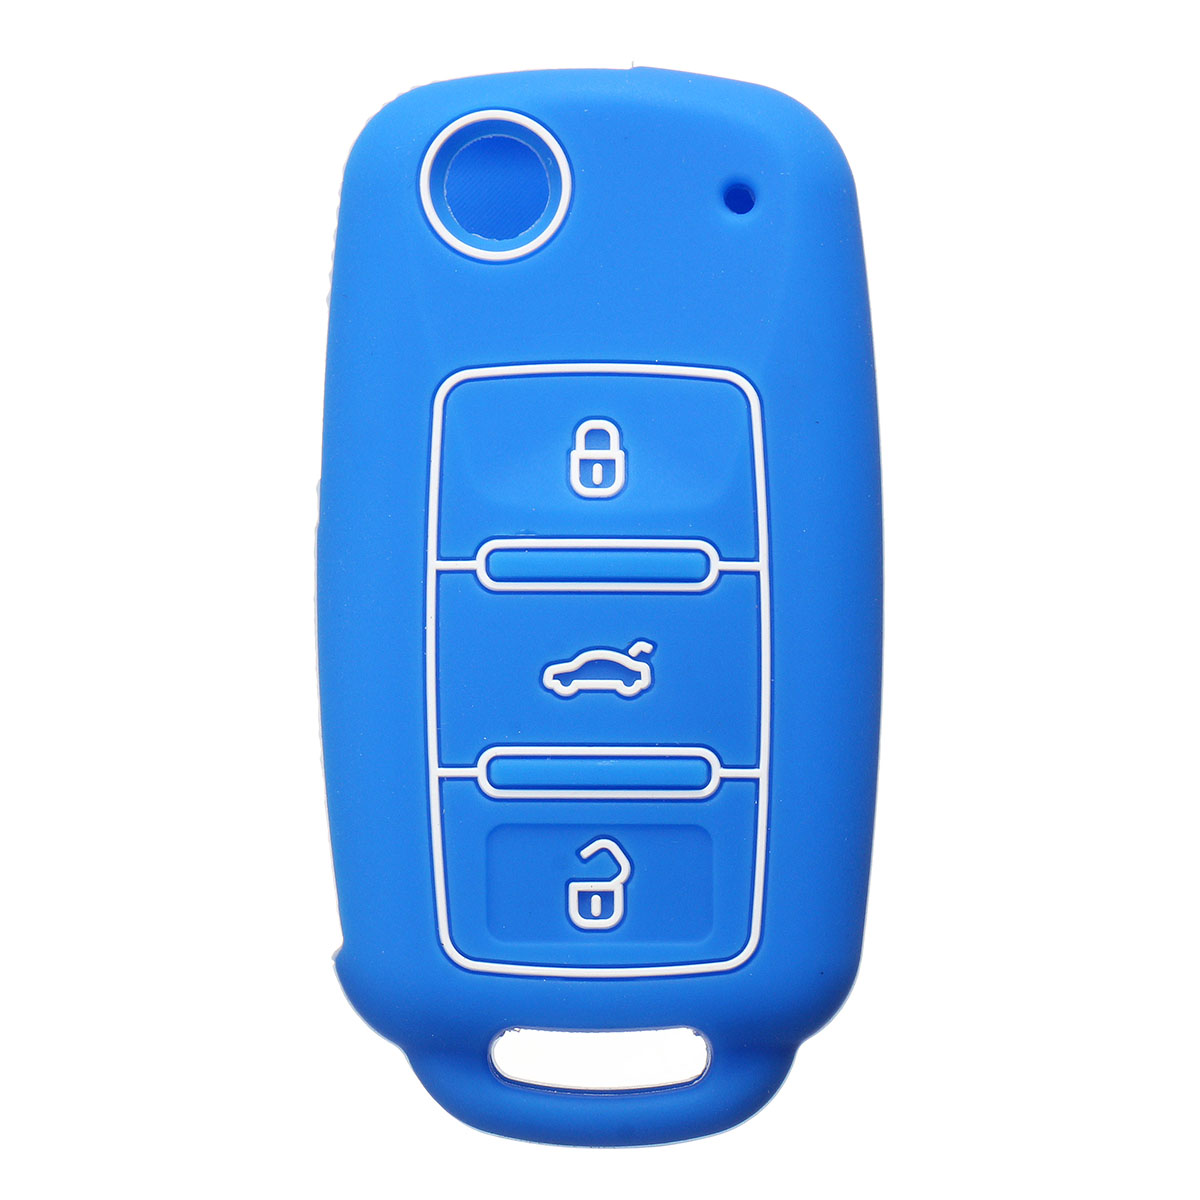 3 Button Silicone Key Cover Keyless Entry Remote Fob Shell For VW Seat For Skoda